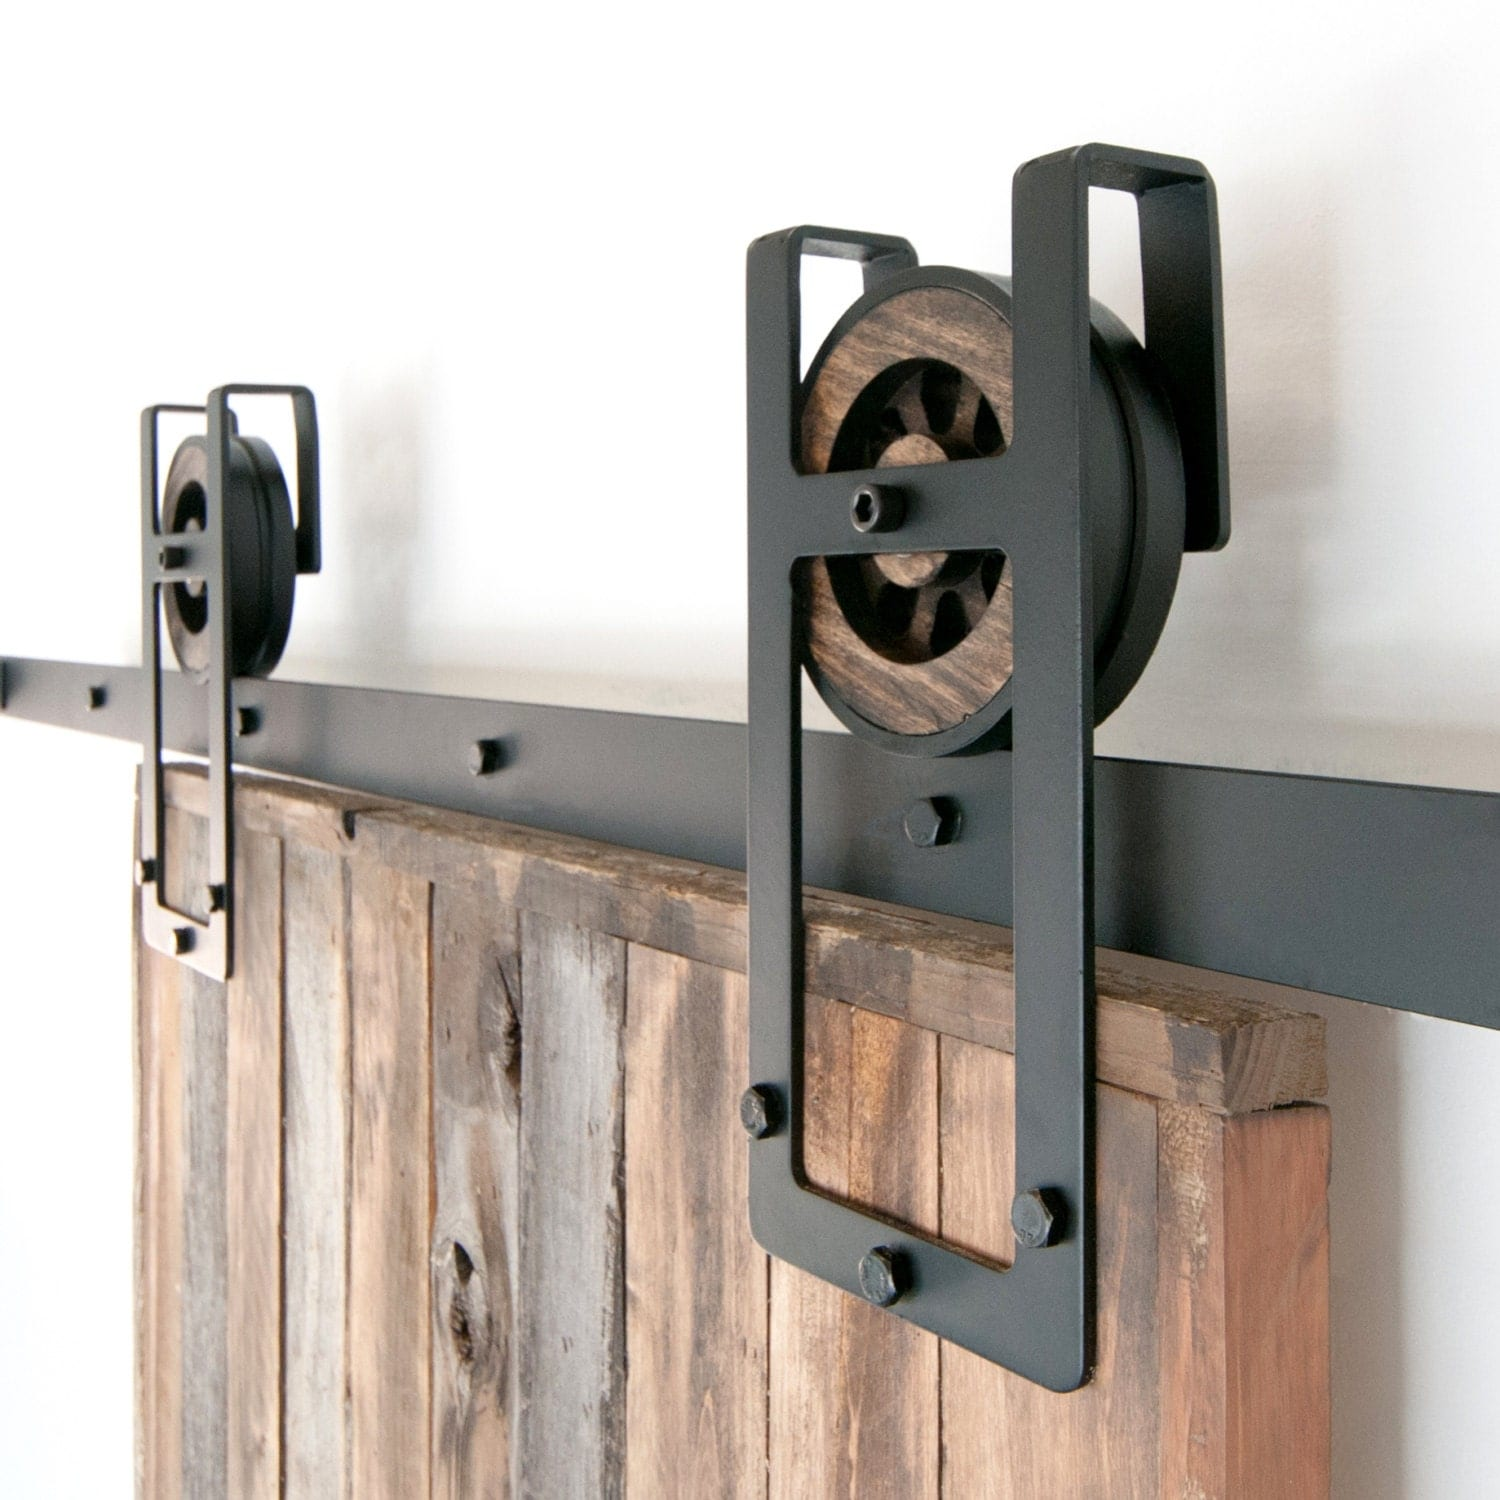 Rail De Porte Coulissante Industrielle Rustic Industrial European Square Horseshoe Sliding Steel